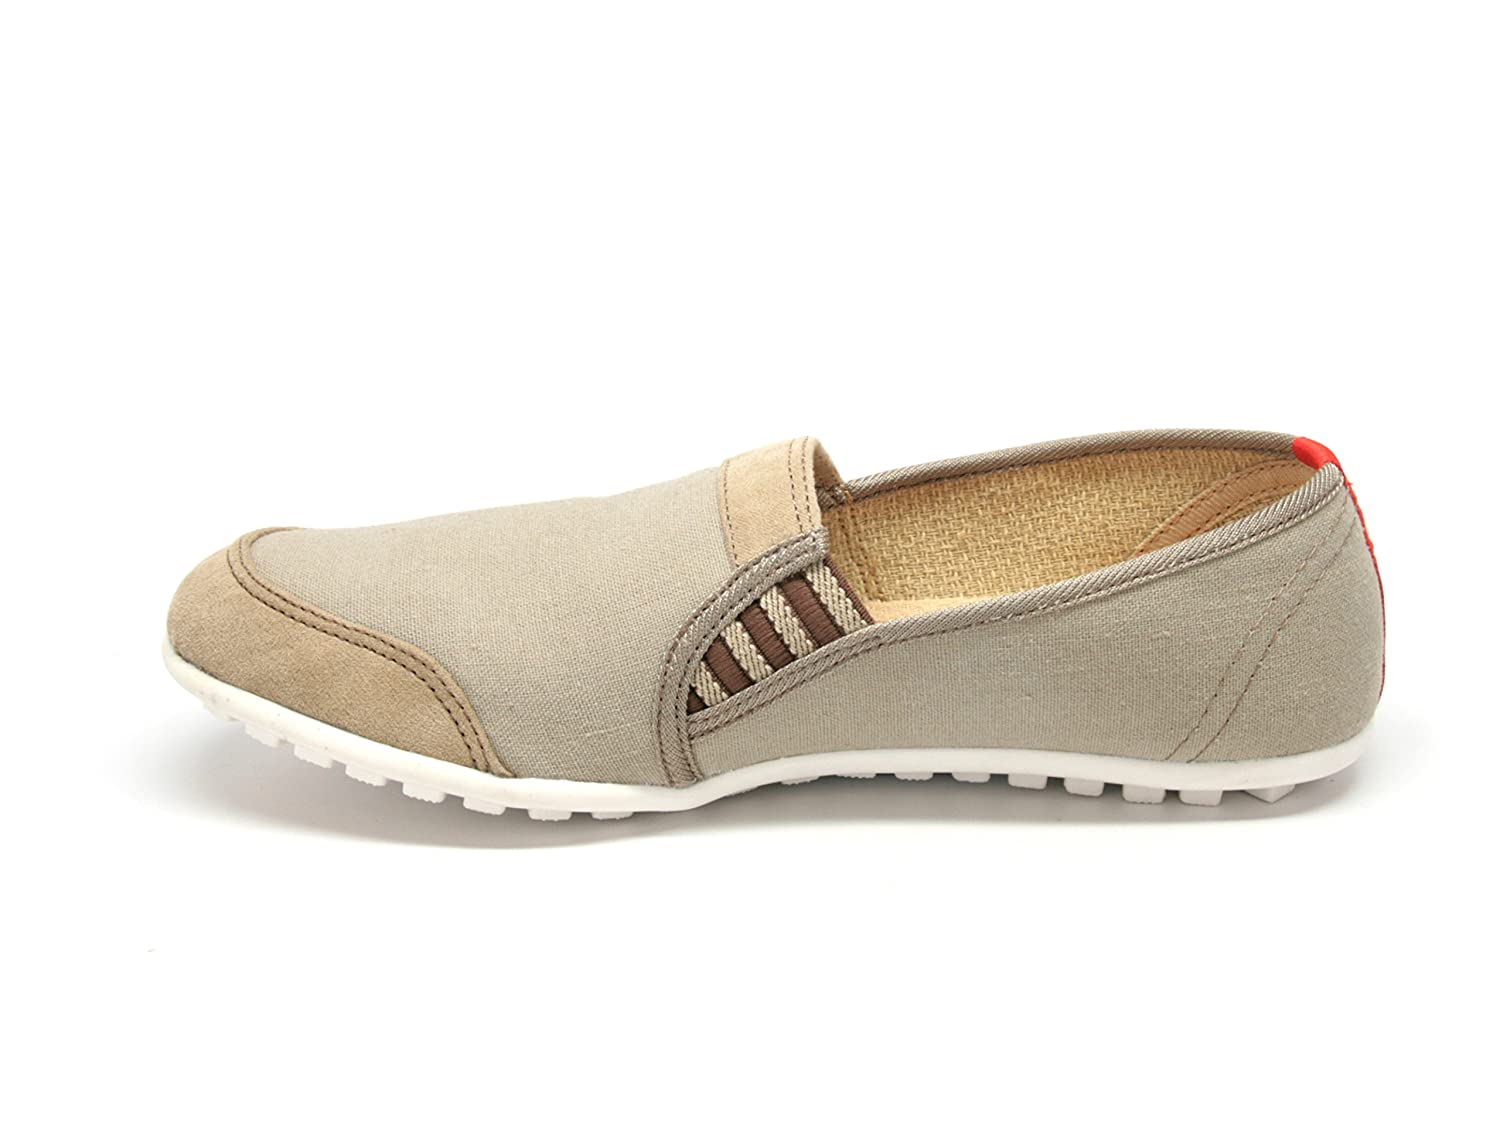 ionic epic Simply Fabric Footwear Womens Lounger